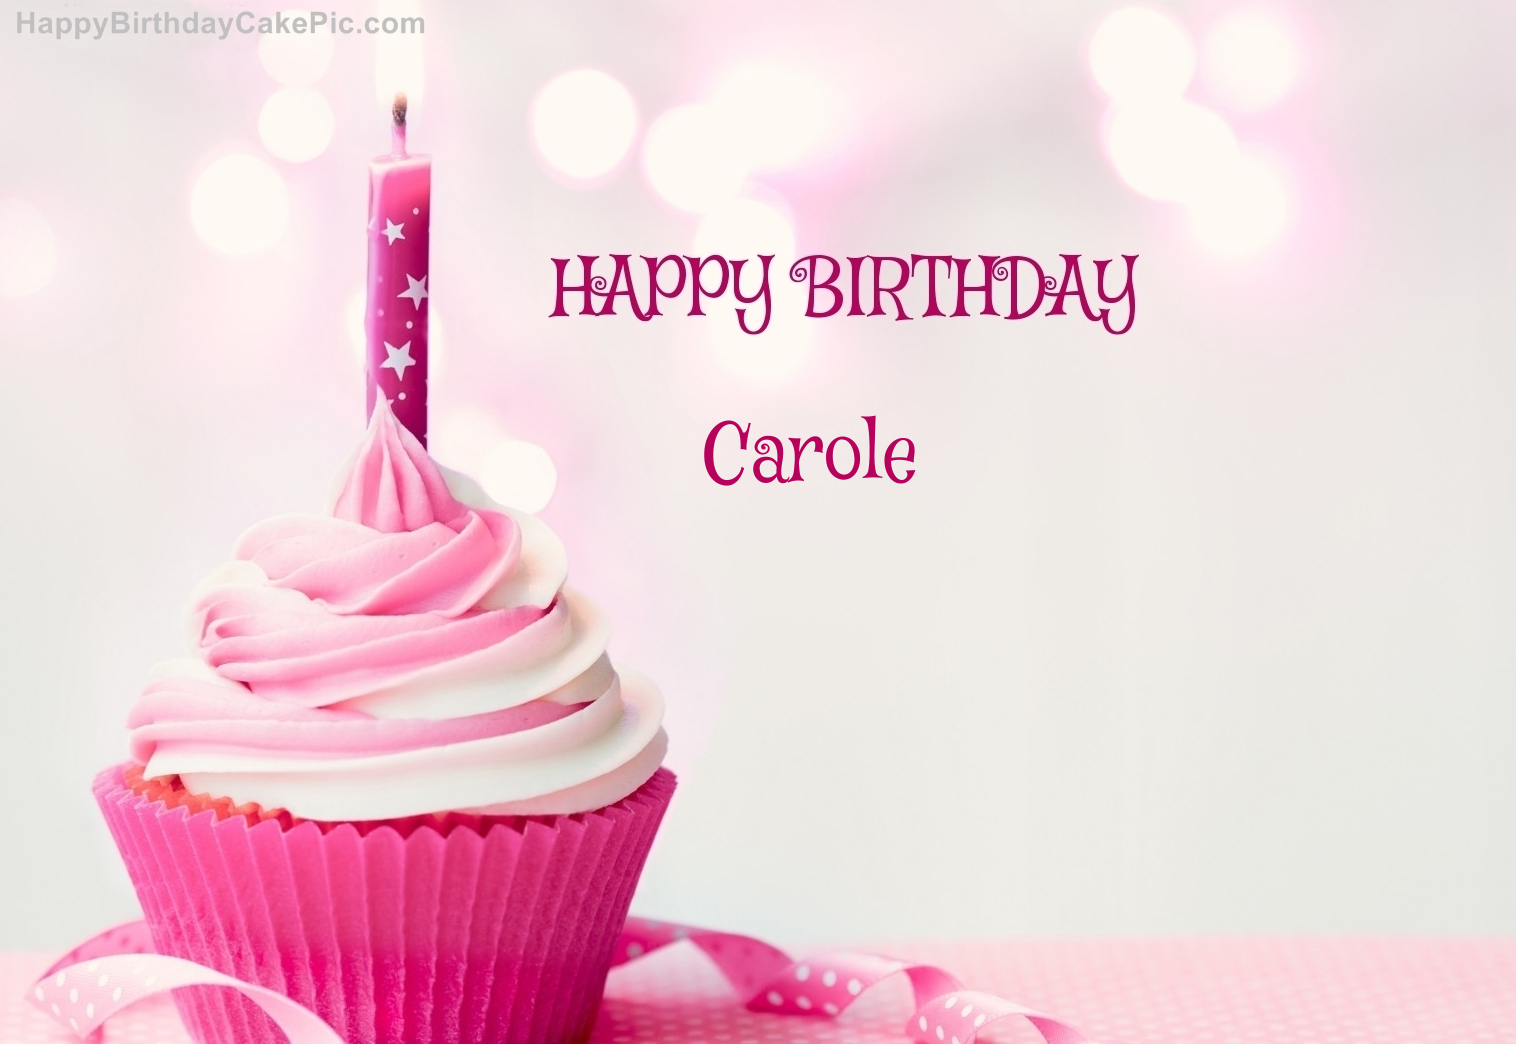 Happy Birthday Cupcake Candle Pink Cake For Carole